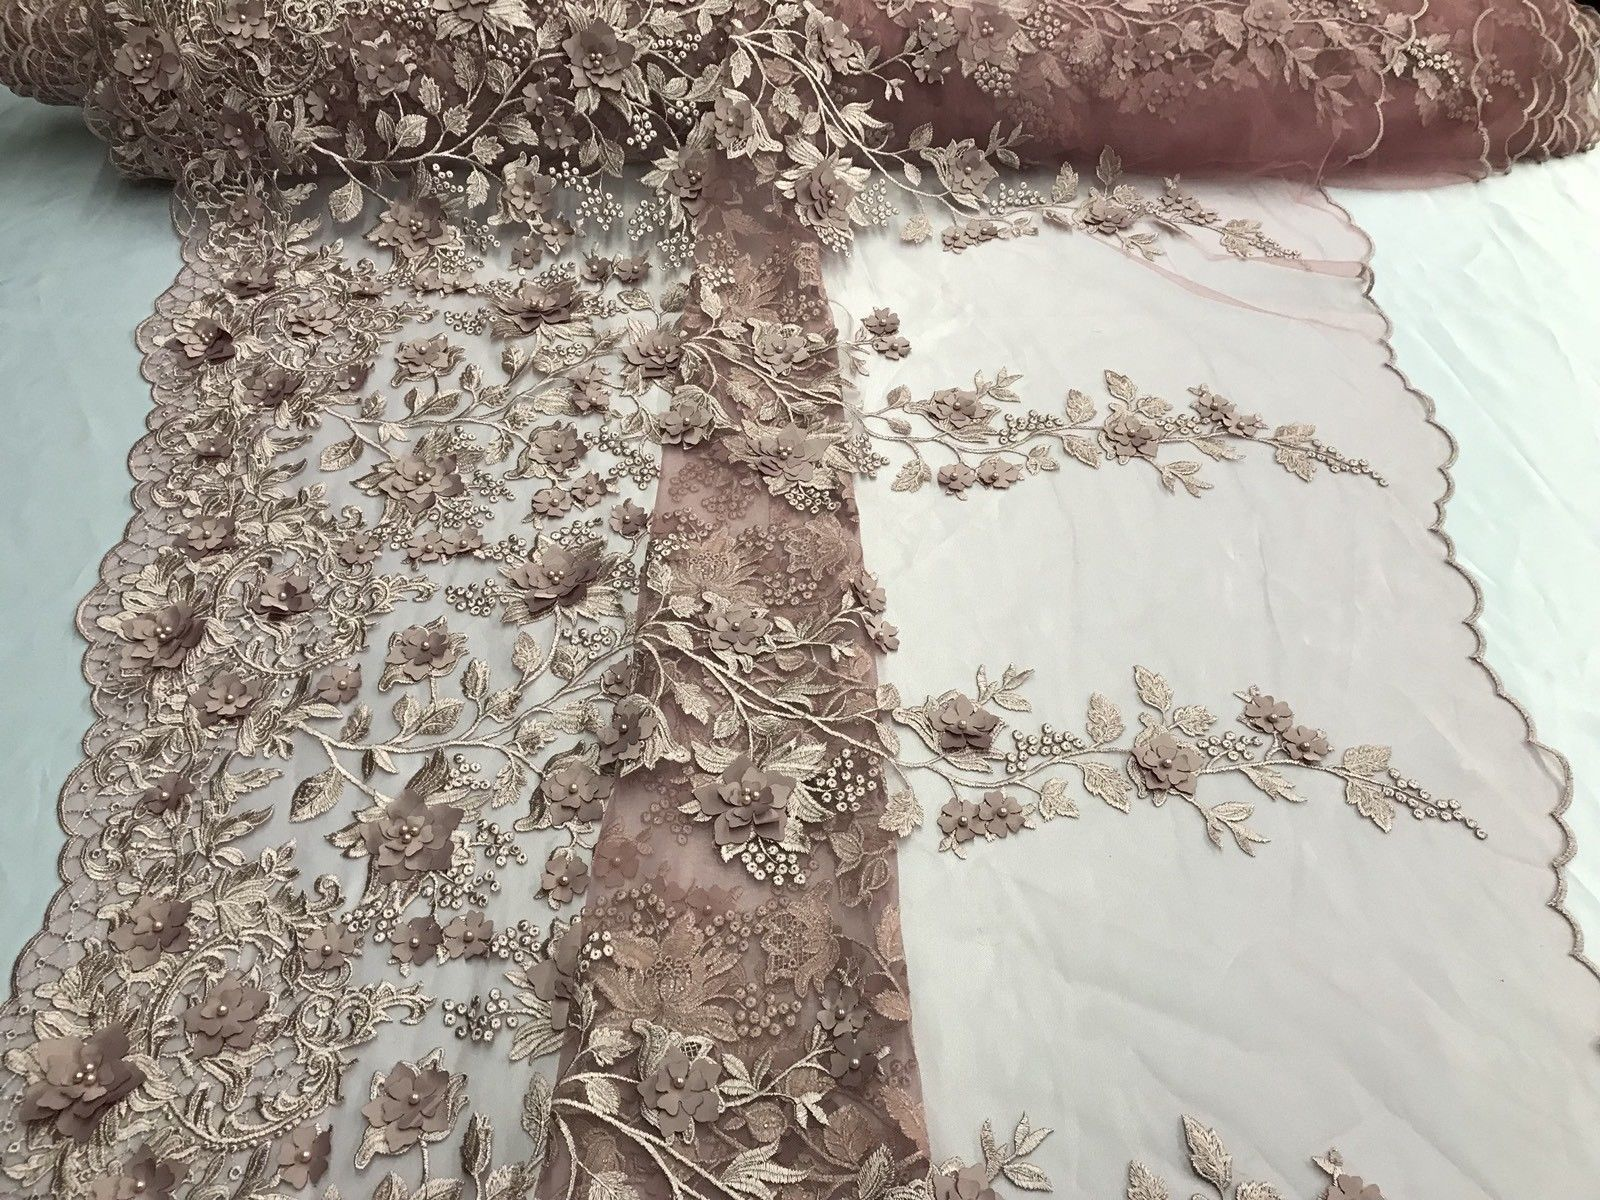 Lace Fabric Embroidered Mesh Taupe Bridal Flower//Floral Wedding By The Yard